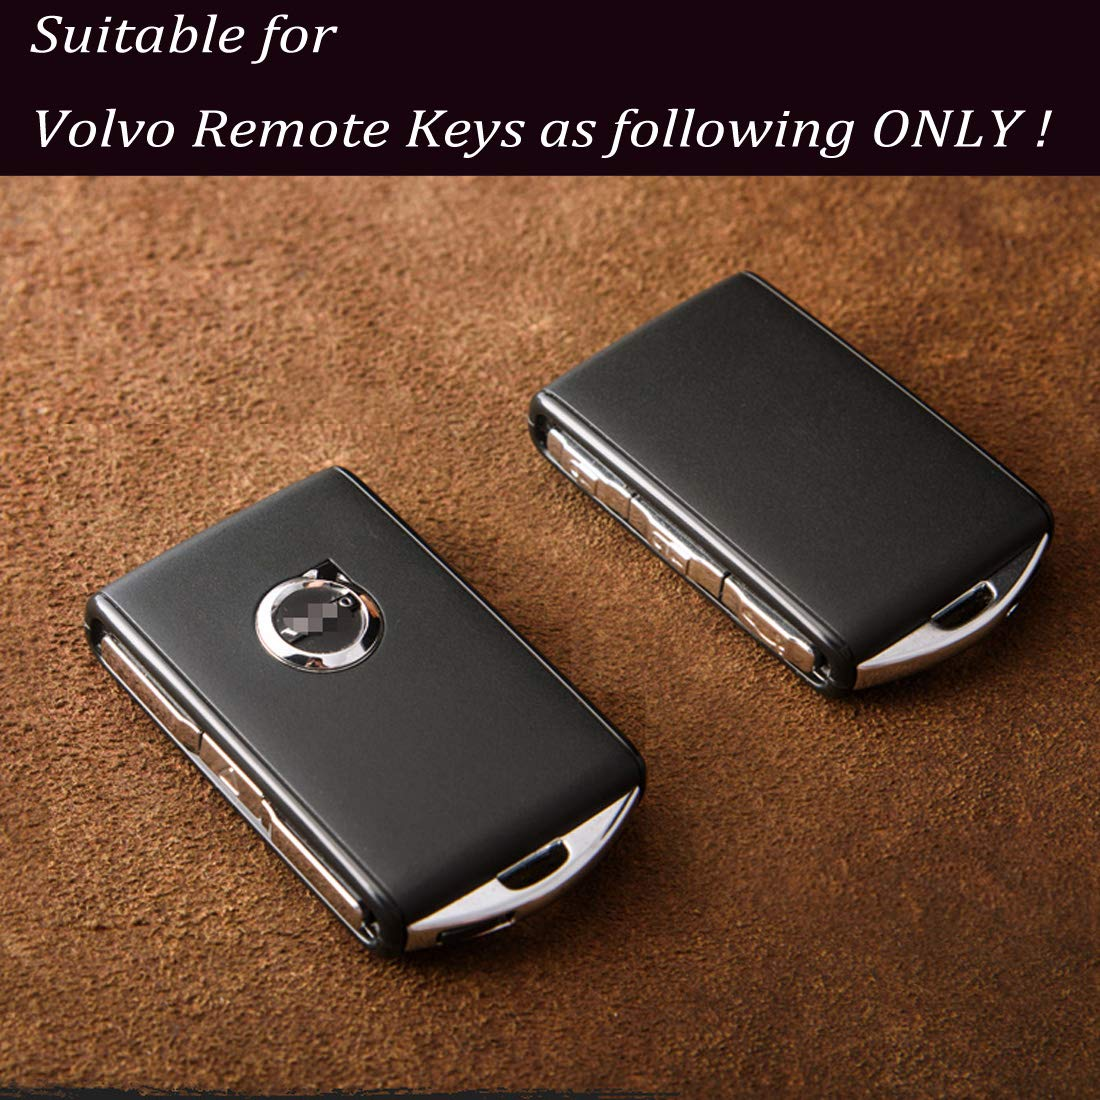 Amazon.com: KMT Car Smart Key FOB Calfskin Leather Case Cover ... on